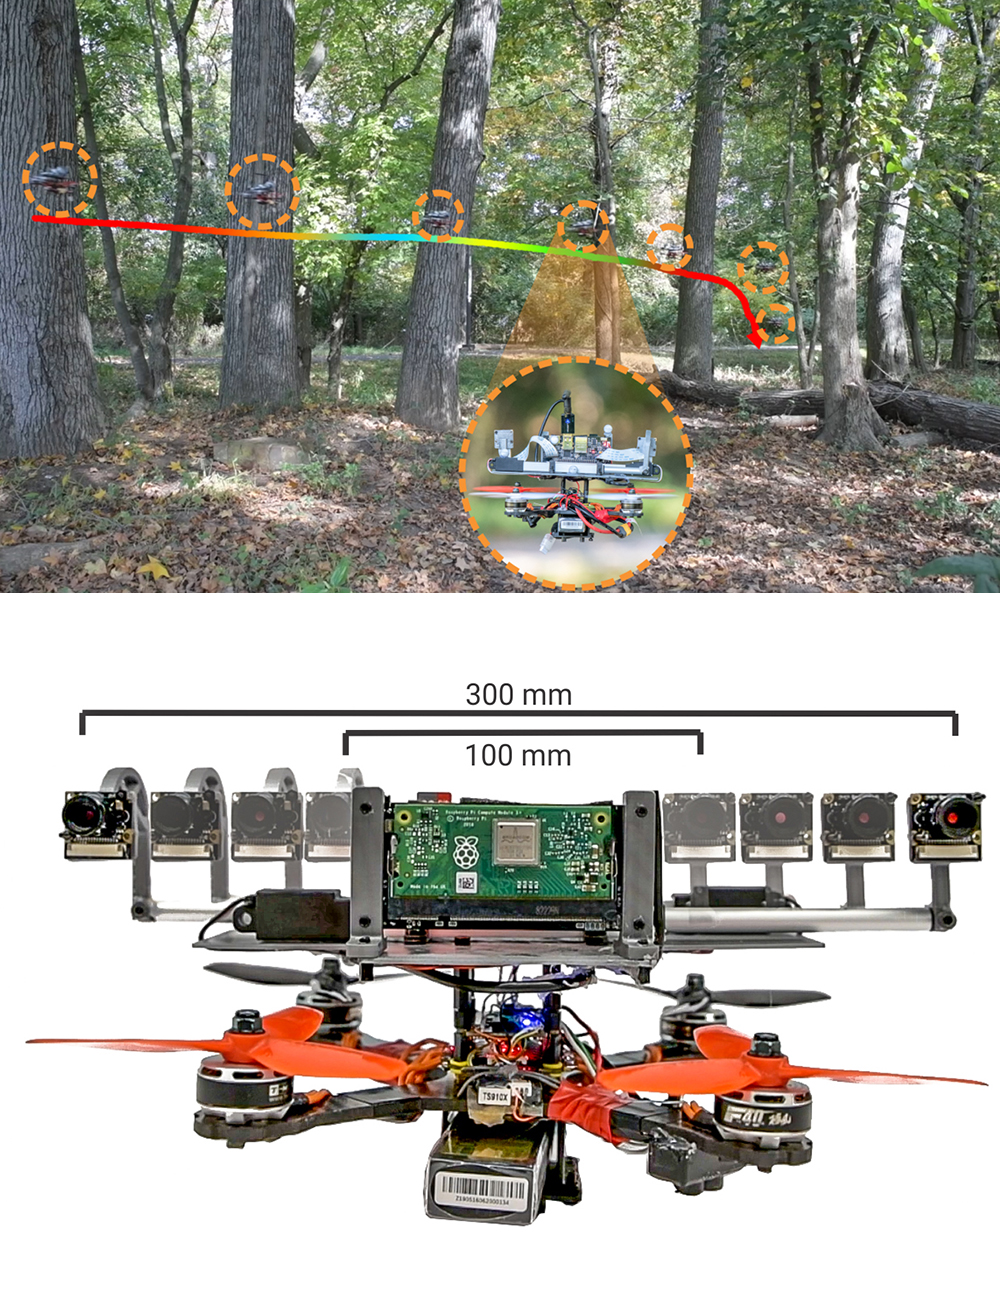 Above: Flying through a forest, the baseline of the quadrotor's stereo system changes and is colored coded (blue to red indicates 100 mm to 300 mm baseline). Below: Variation of baseline from 100 mm to 300 mm. Notice that at the largest baseline, the stereo system is bigger than the quadrotor. Source: Figures from the paper.